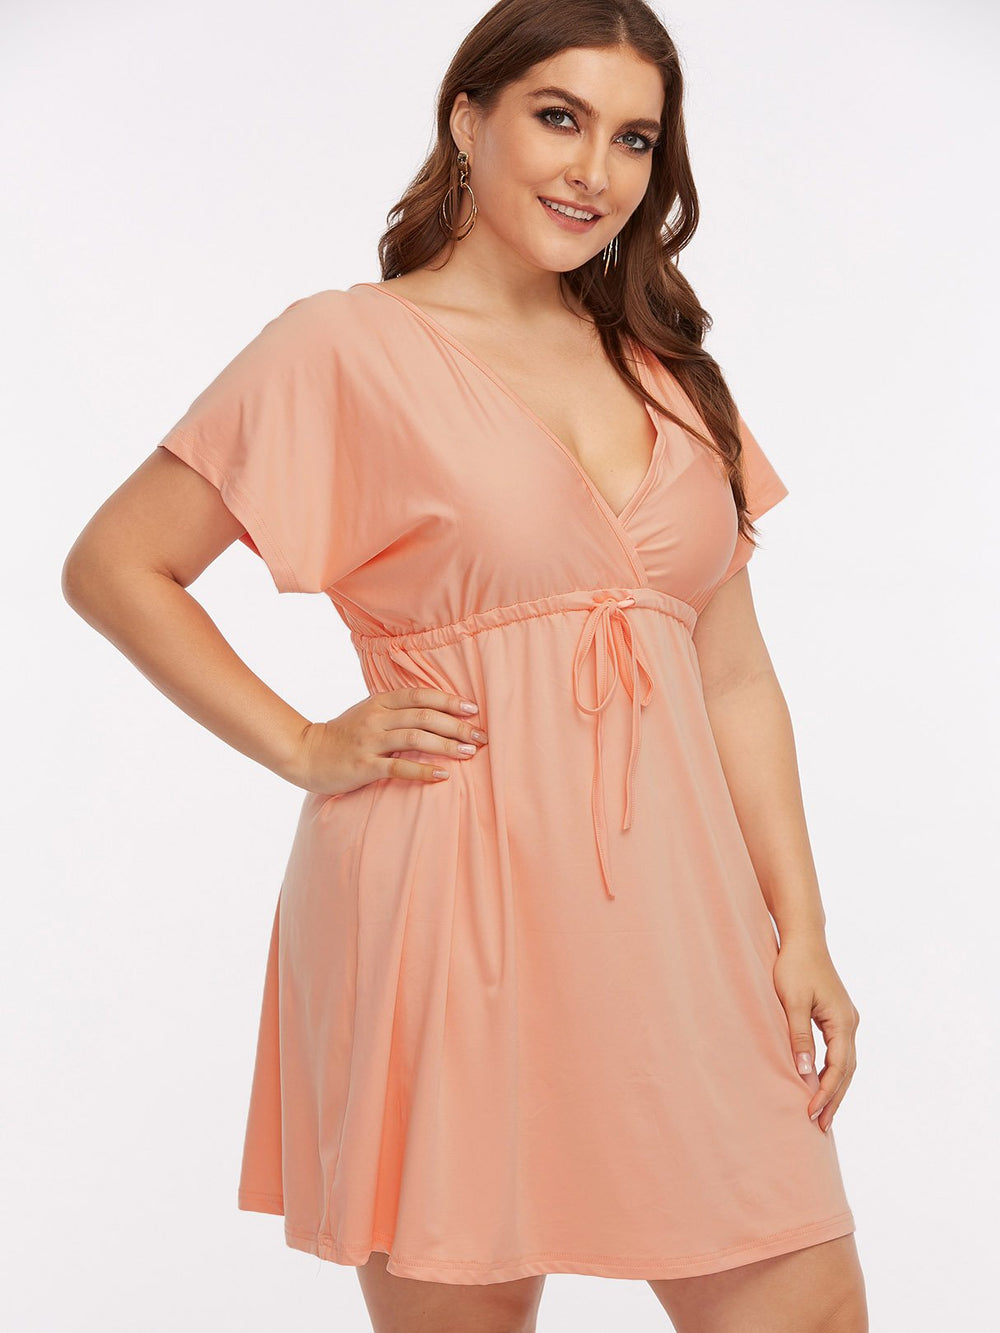 Ladies Light Pink Plus Size Dresses